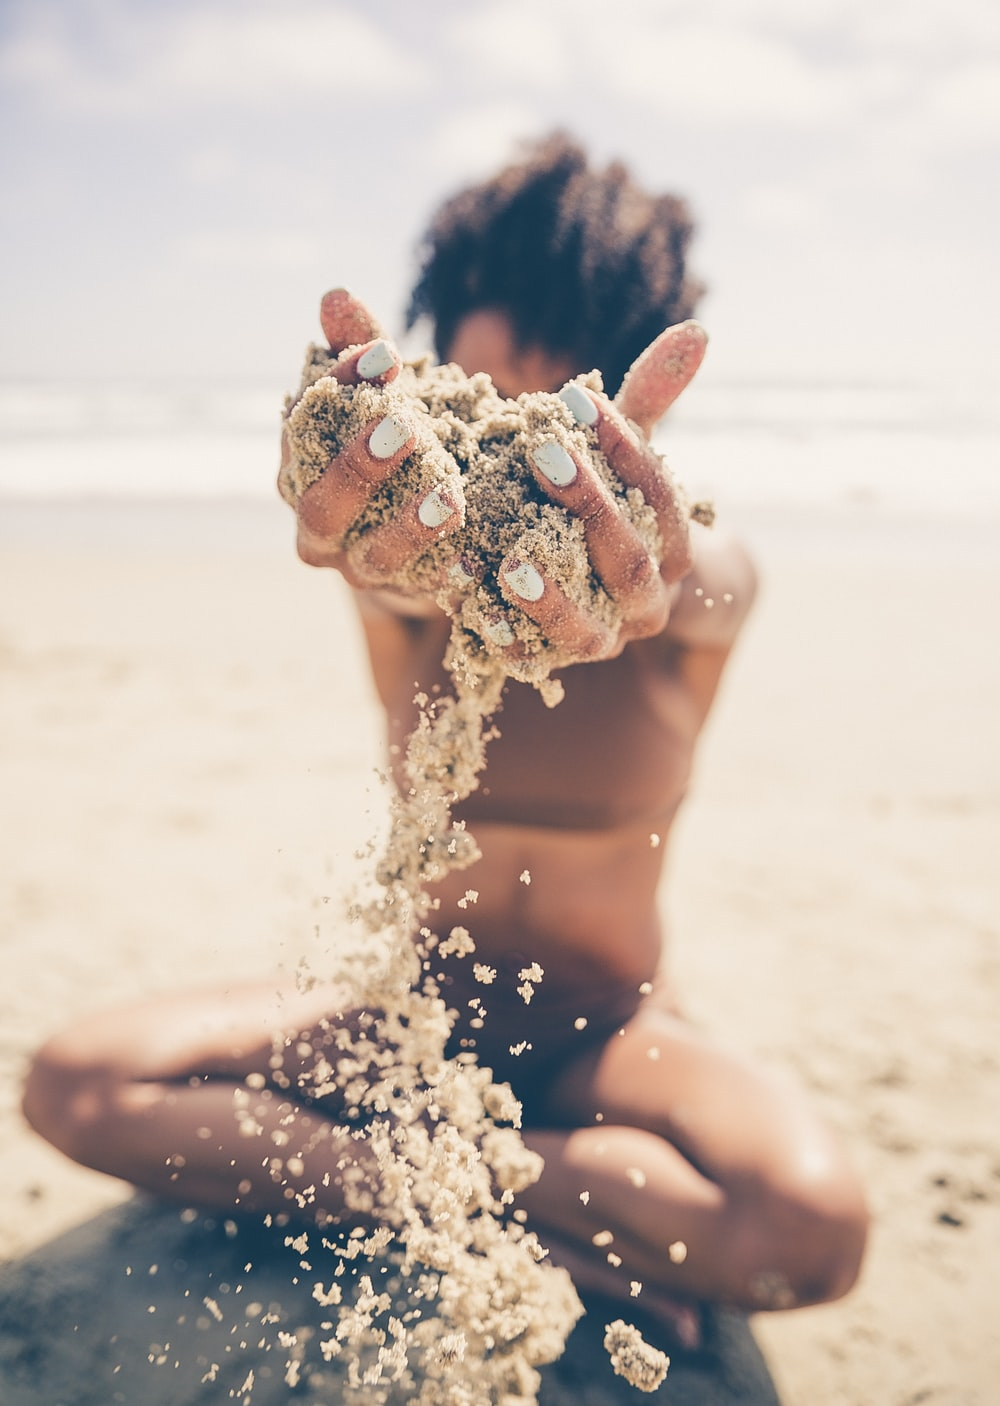 selective focus photo of woman sitting and raising sand during daytime